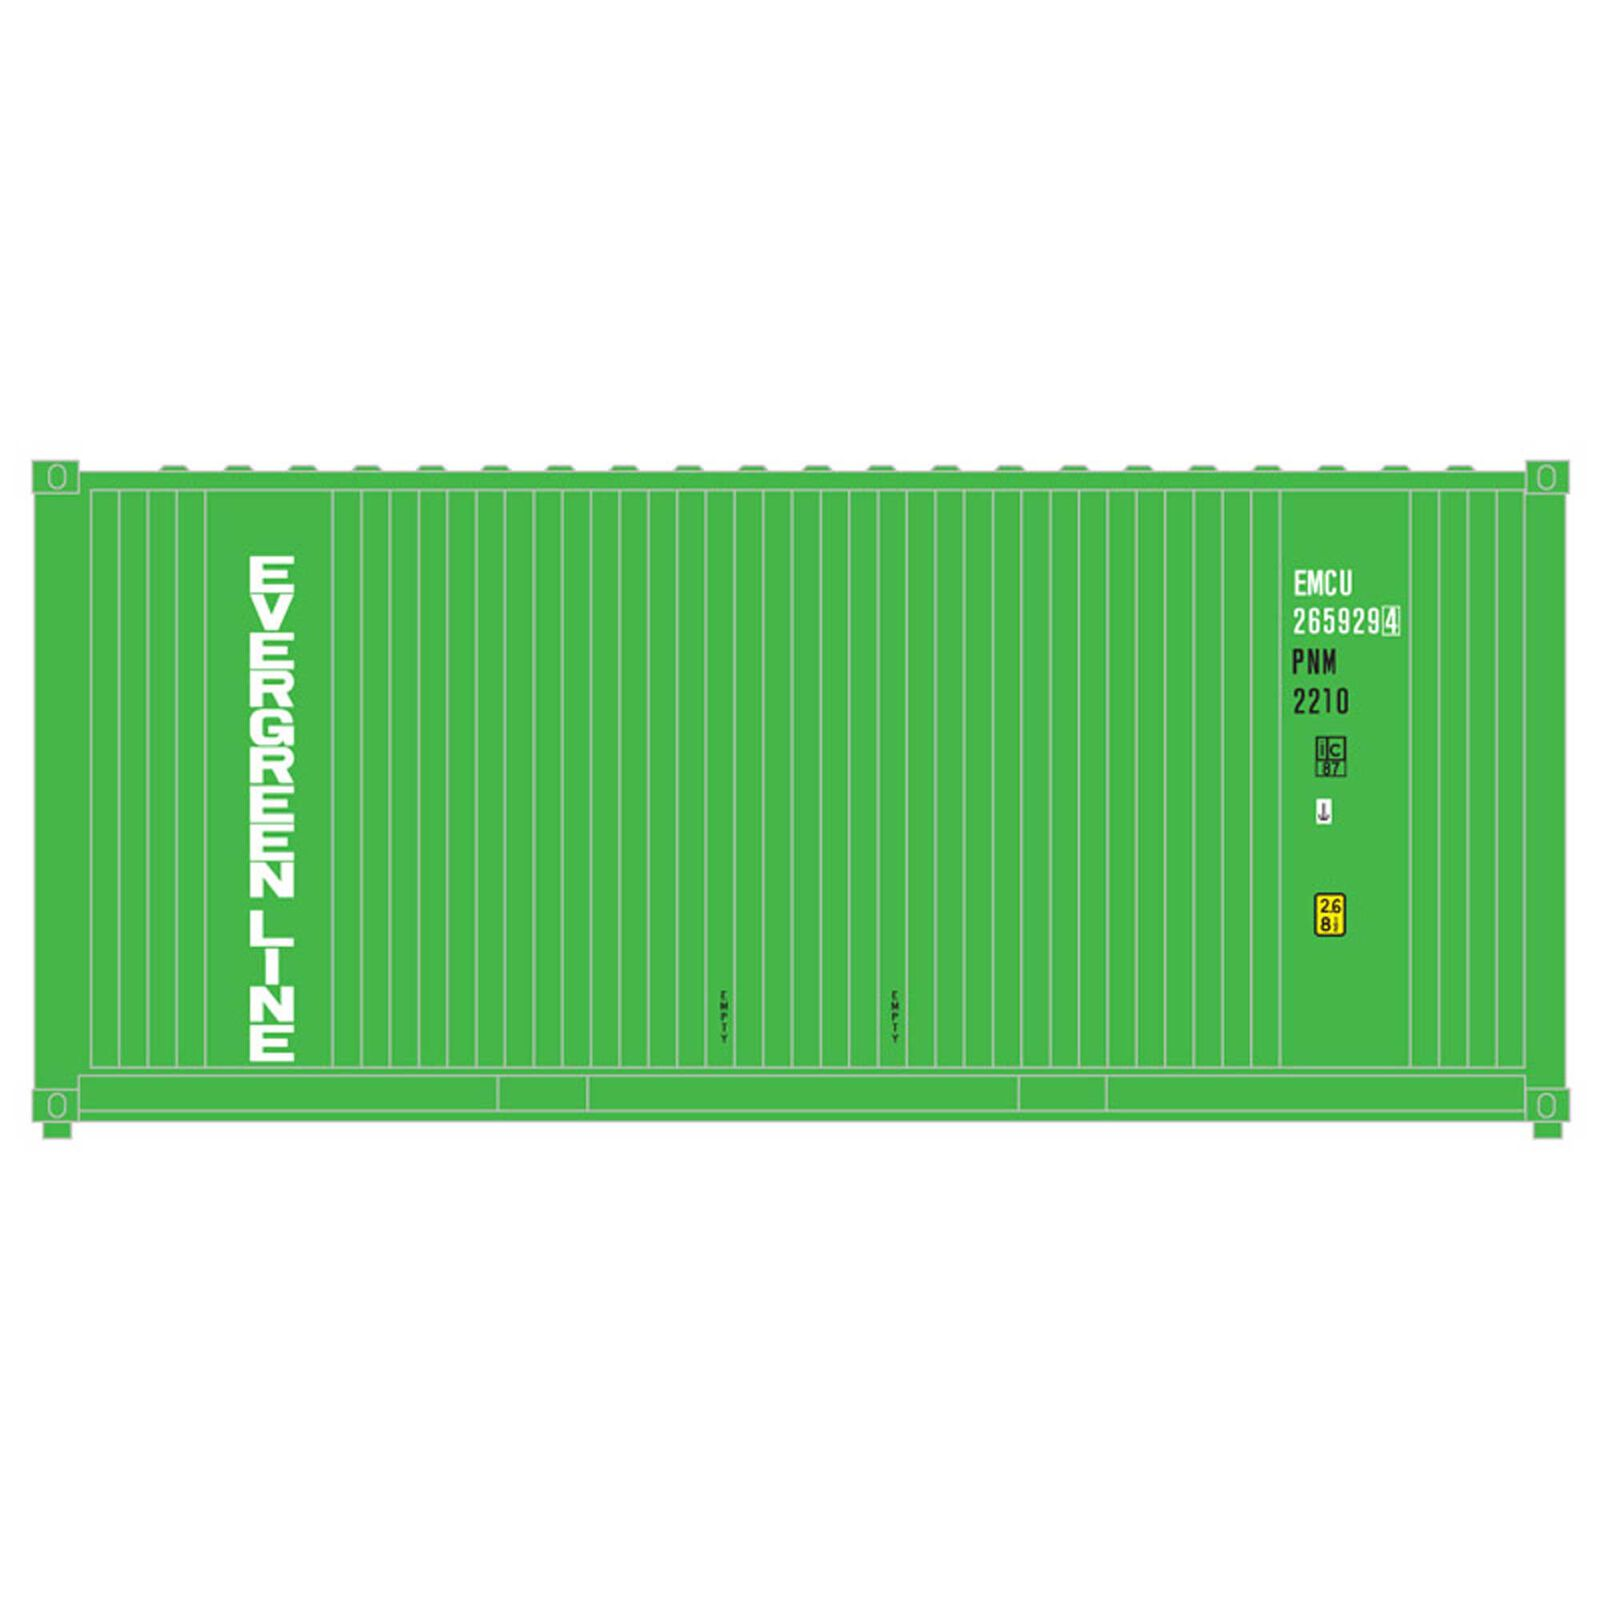 O Trainman 20' Container Evergreen (2)